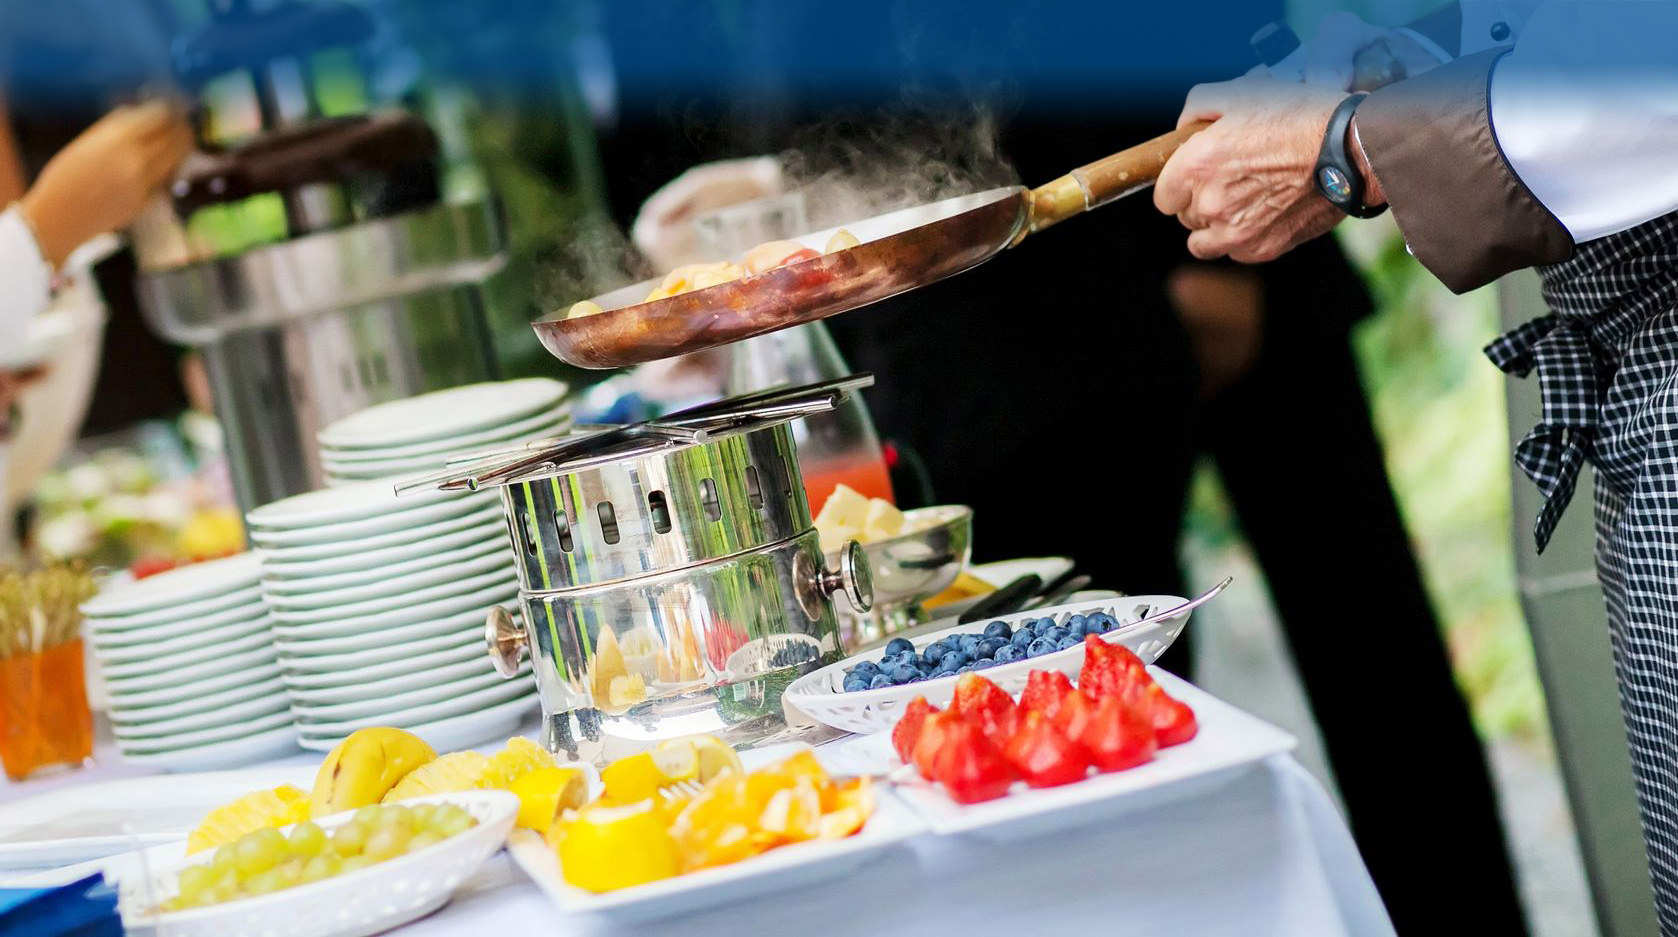 catering event chef